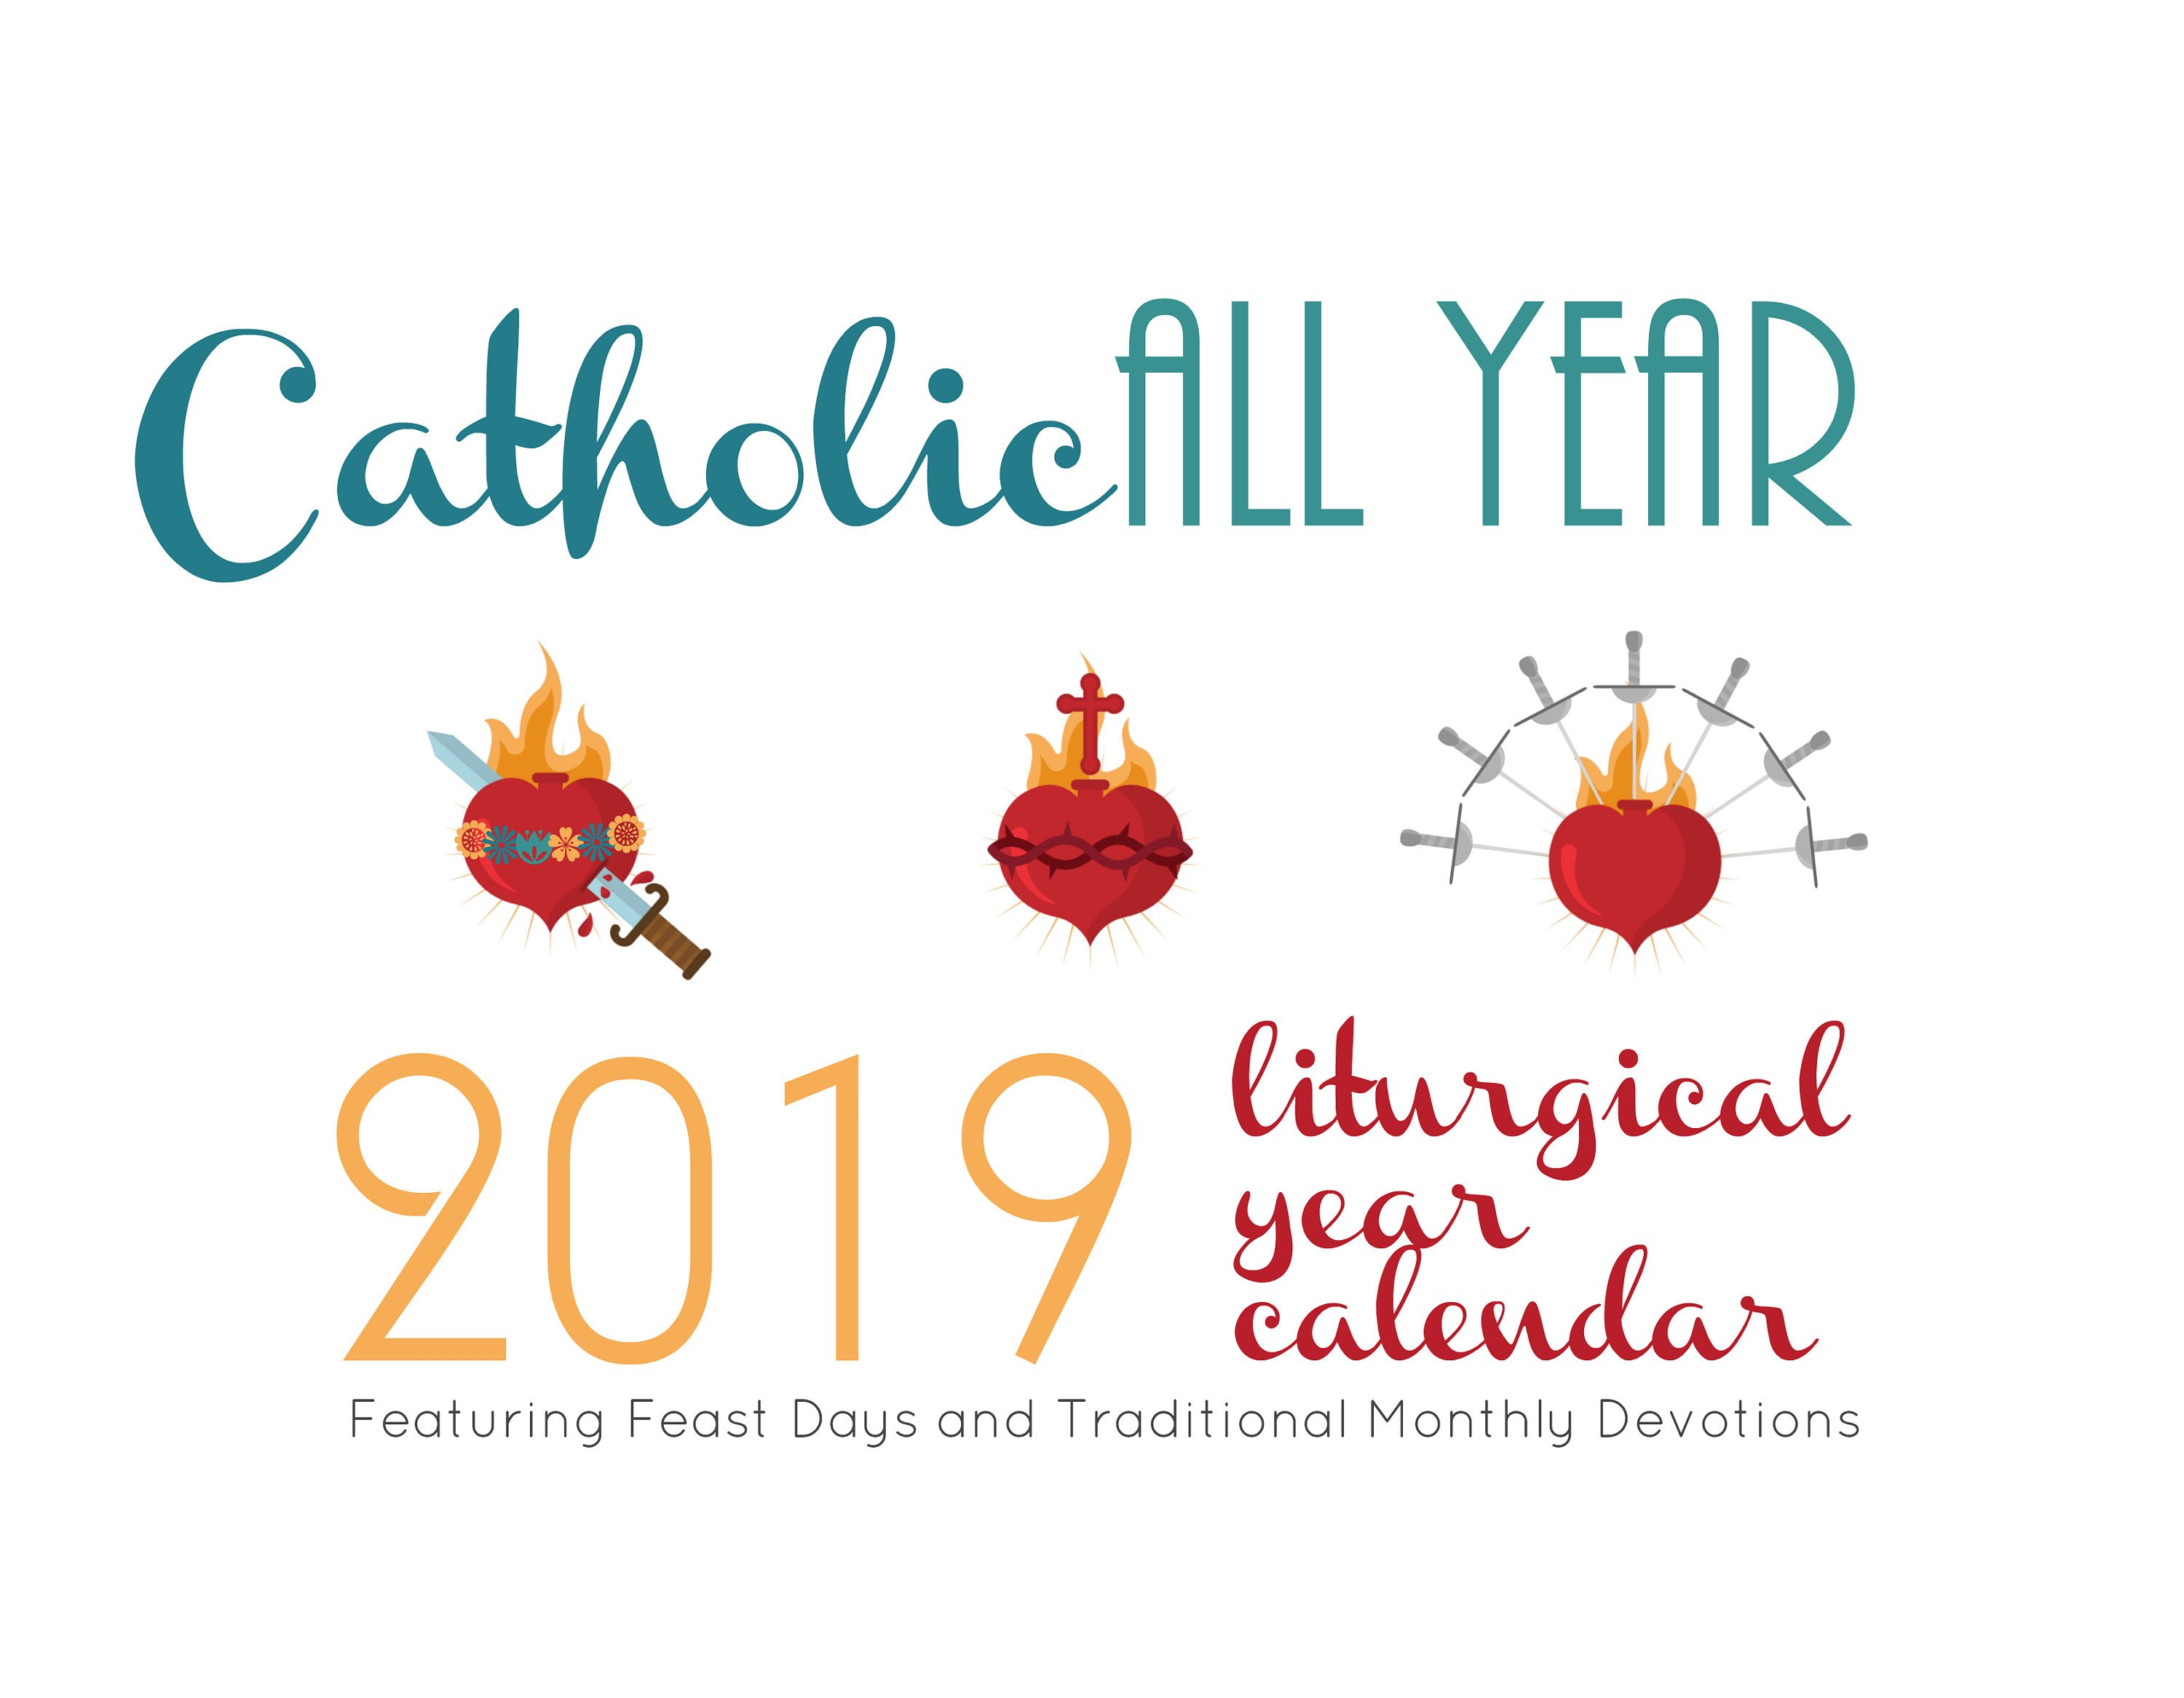 Catholic All Year 2019 Liturgical Year Calendar digital download 3000x2333